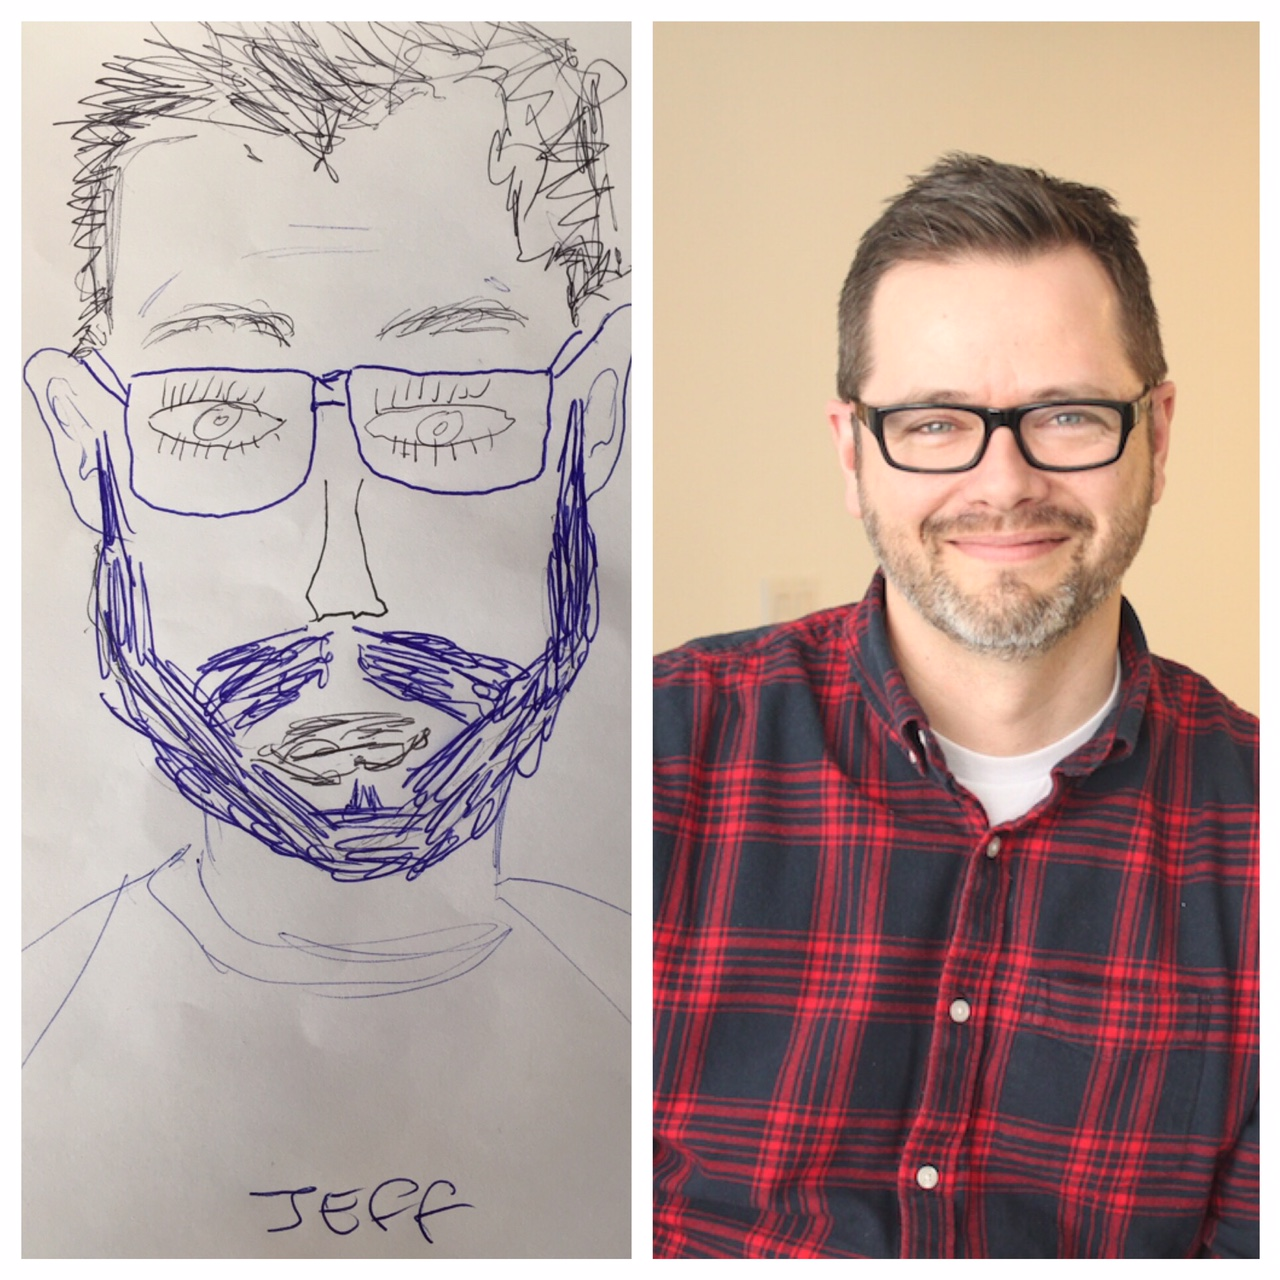 Jeff's face drawing